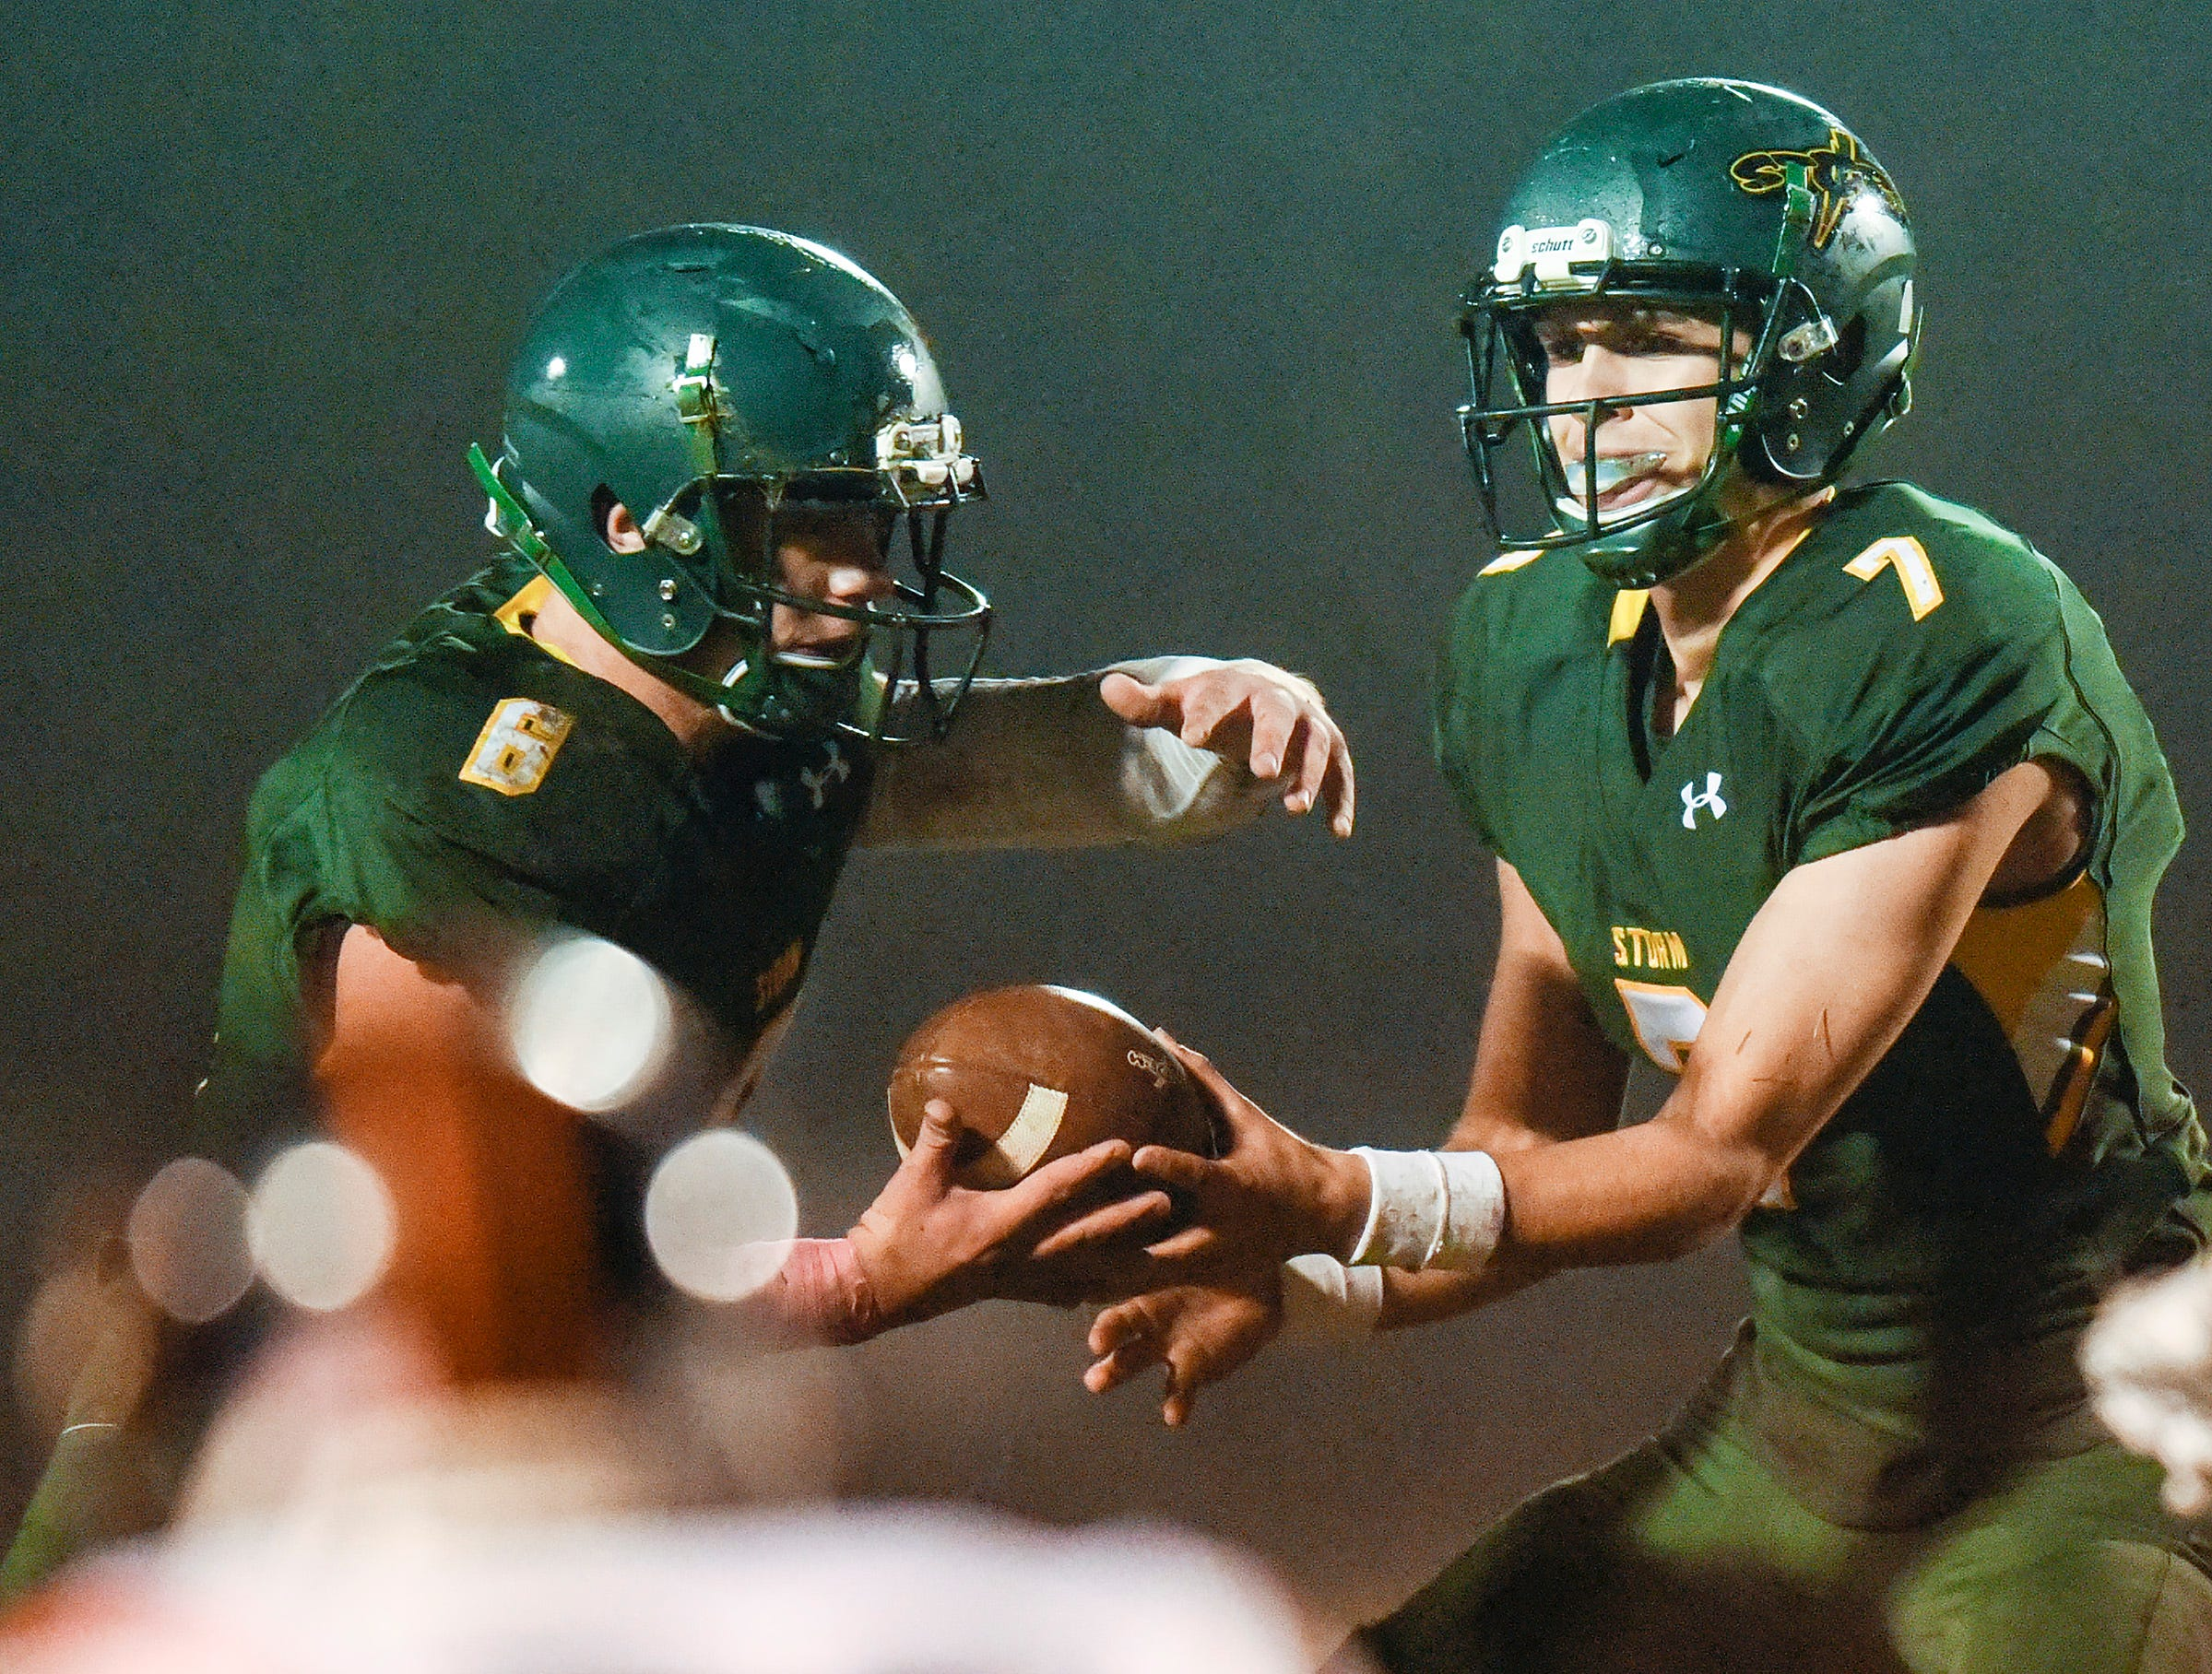 Sauk Rapids running back J.D. Bates takes the ball from quarterback Cade Milton-Baumgardner on a play against Tech during the first half Friday, Oct. 5, in Sauk Rapids.